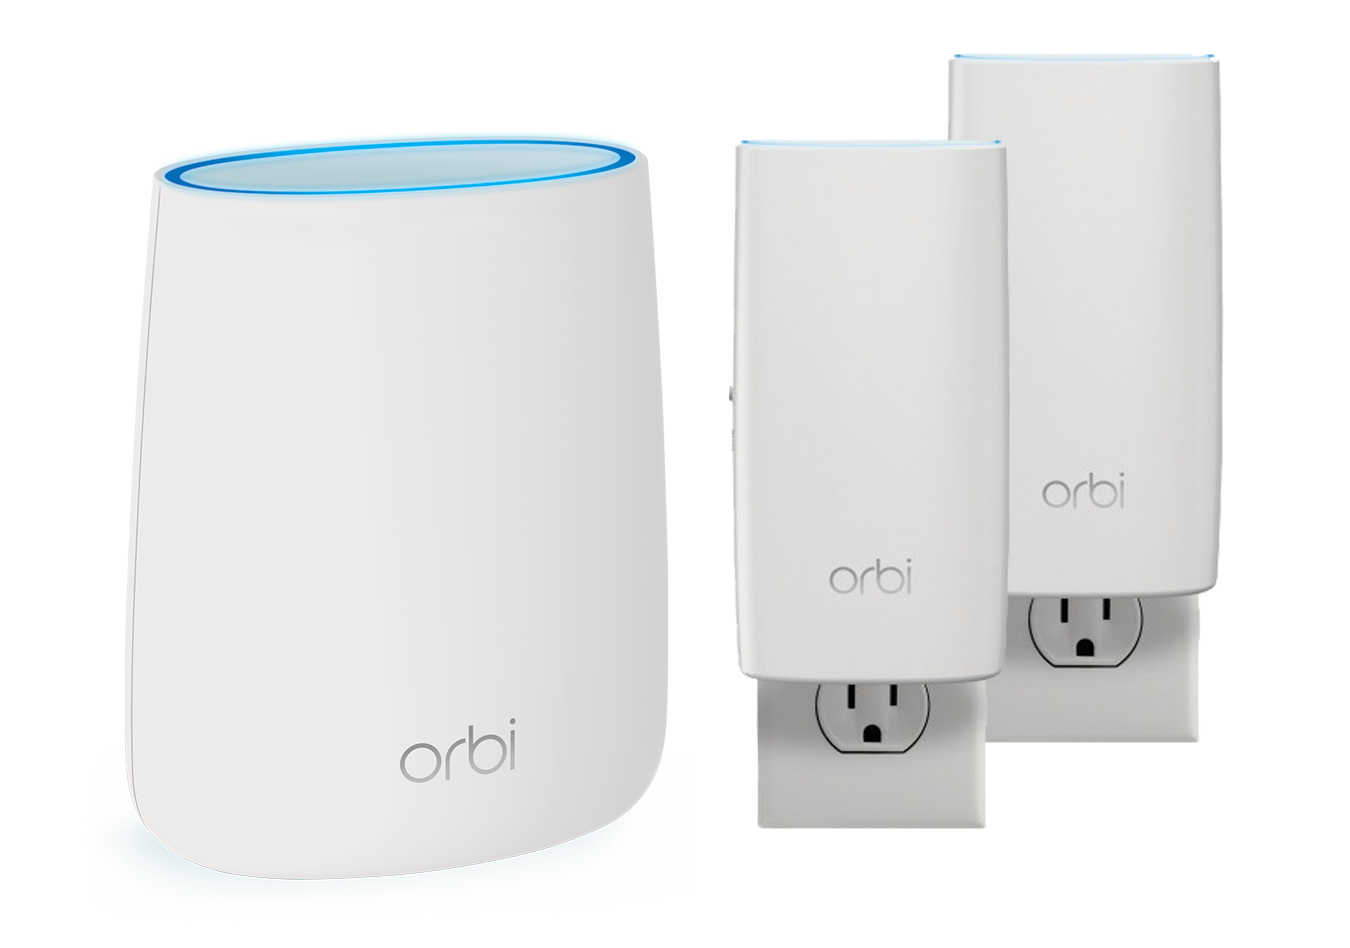 Netgear Orbi Wifi System Homespace Technologies